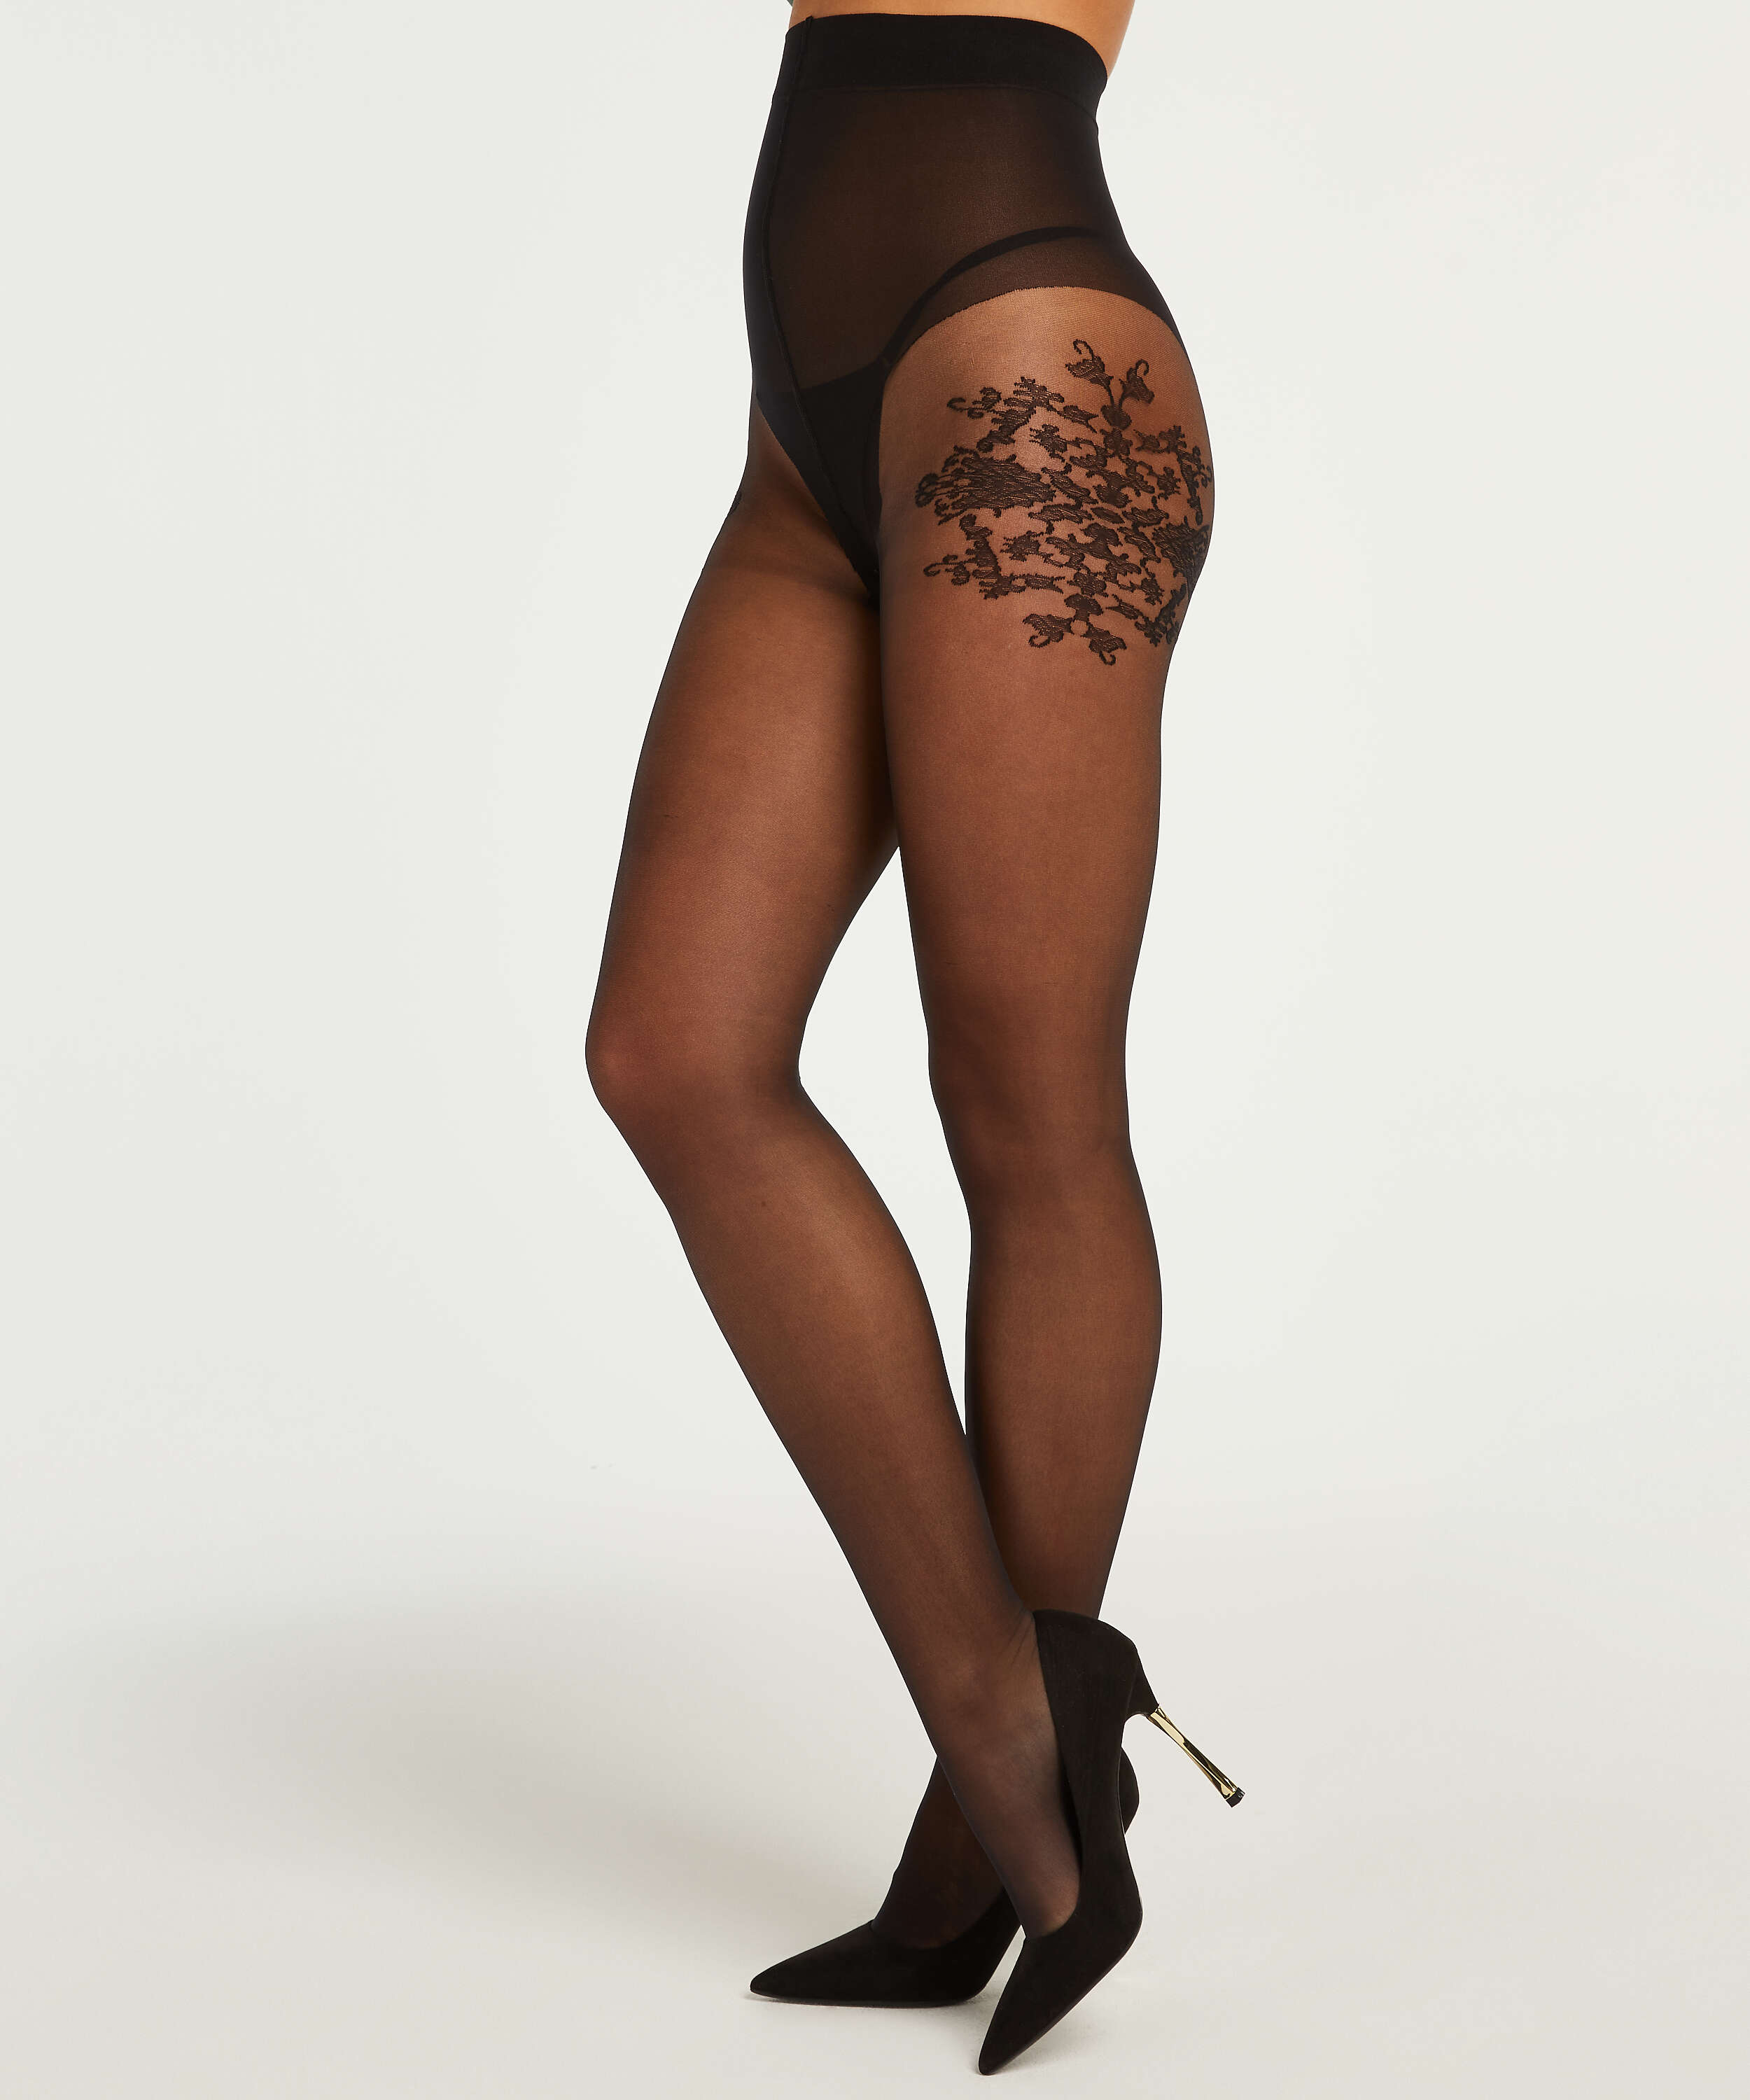 Tights 15 Denier Floral Ornament, Black, main